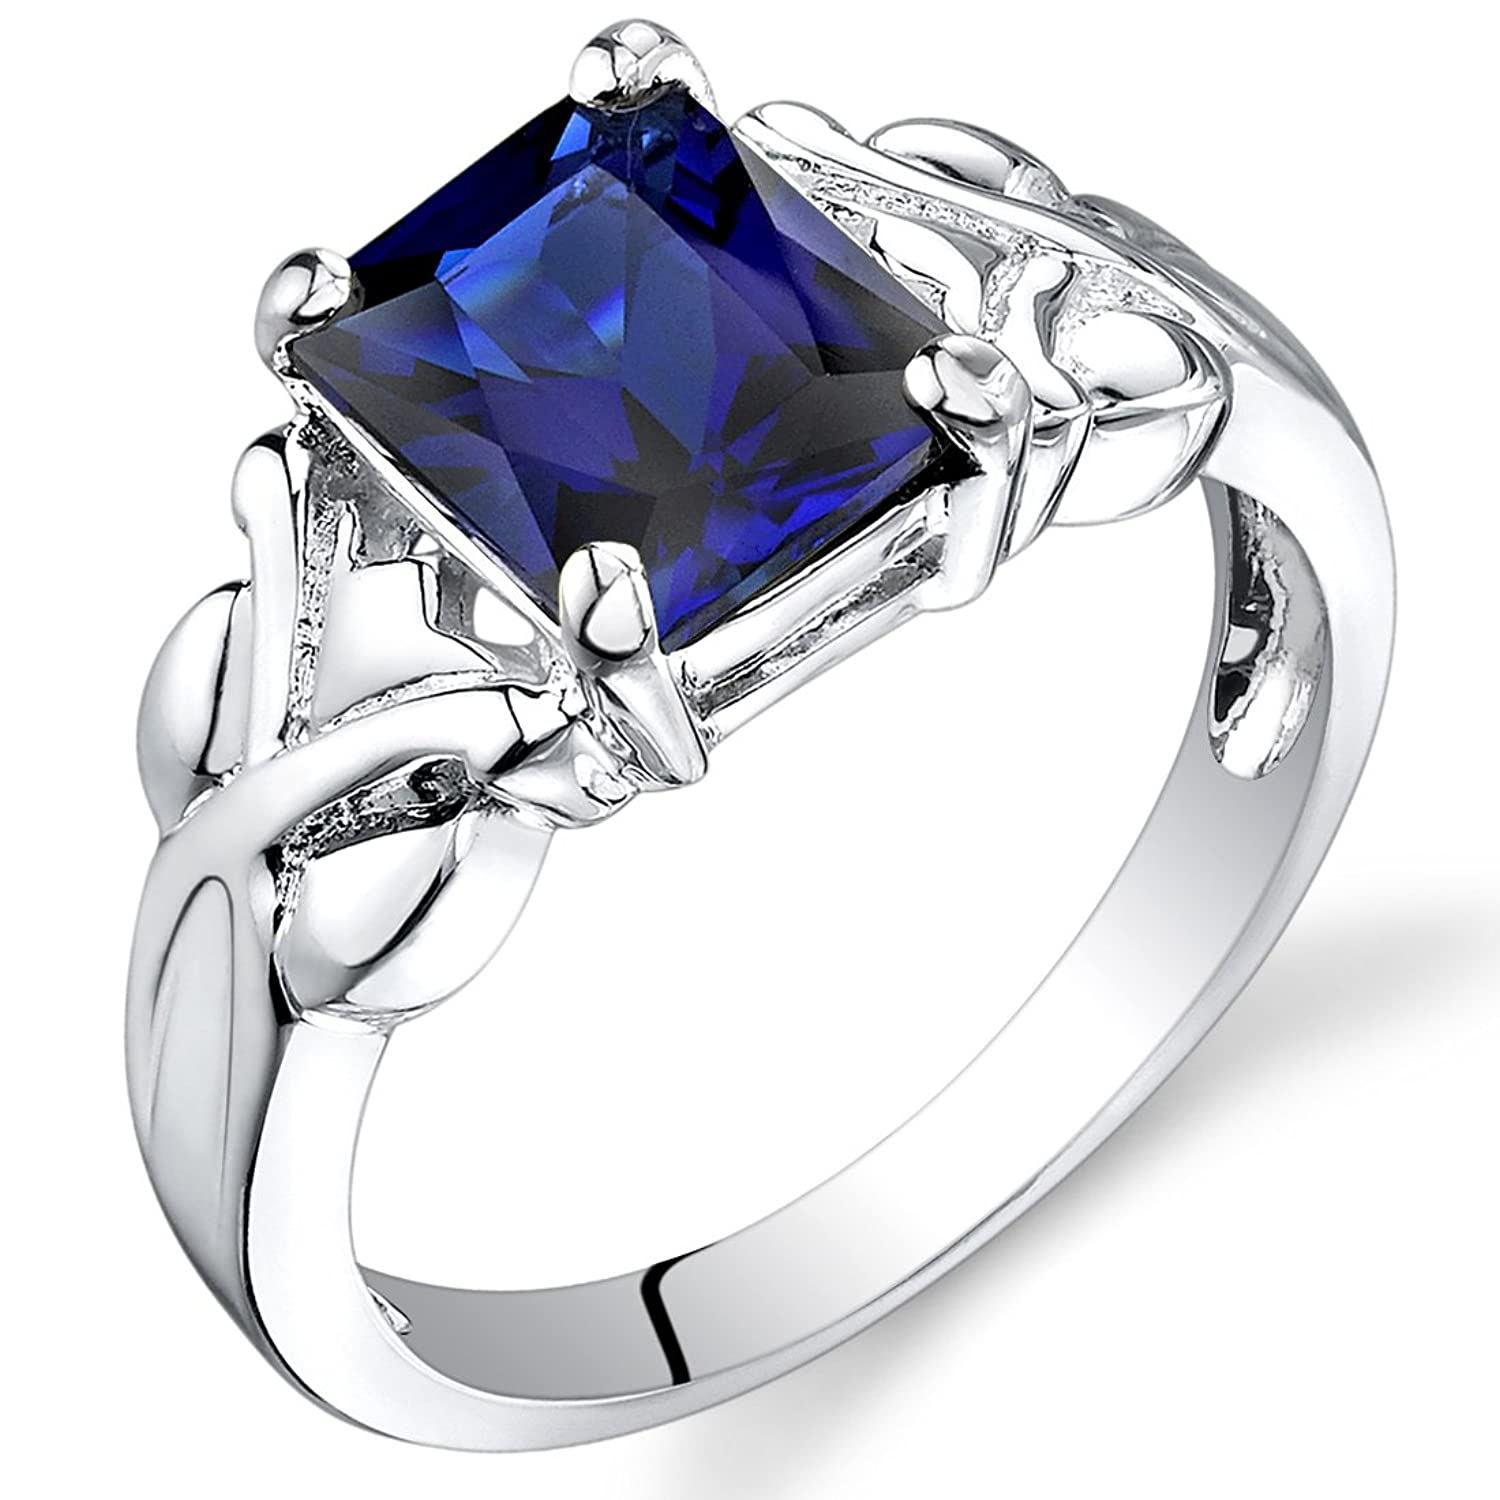 Created Sapphire Ring Radiant Cut Sterling Silver 3.00 Carats Sizes 5 to 9